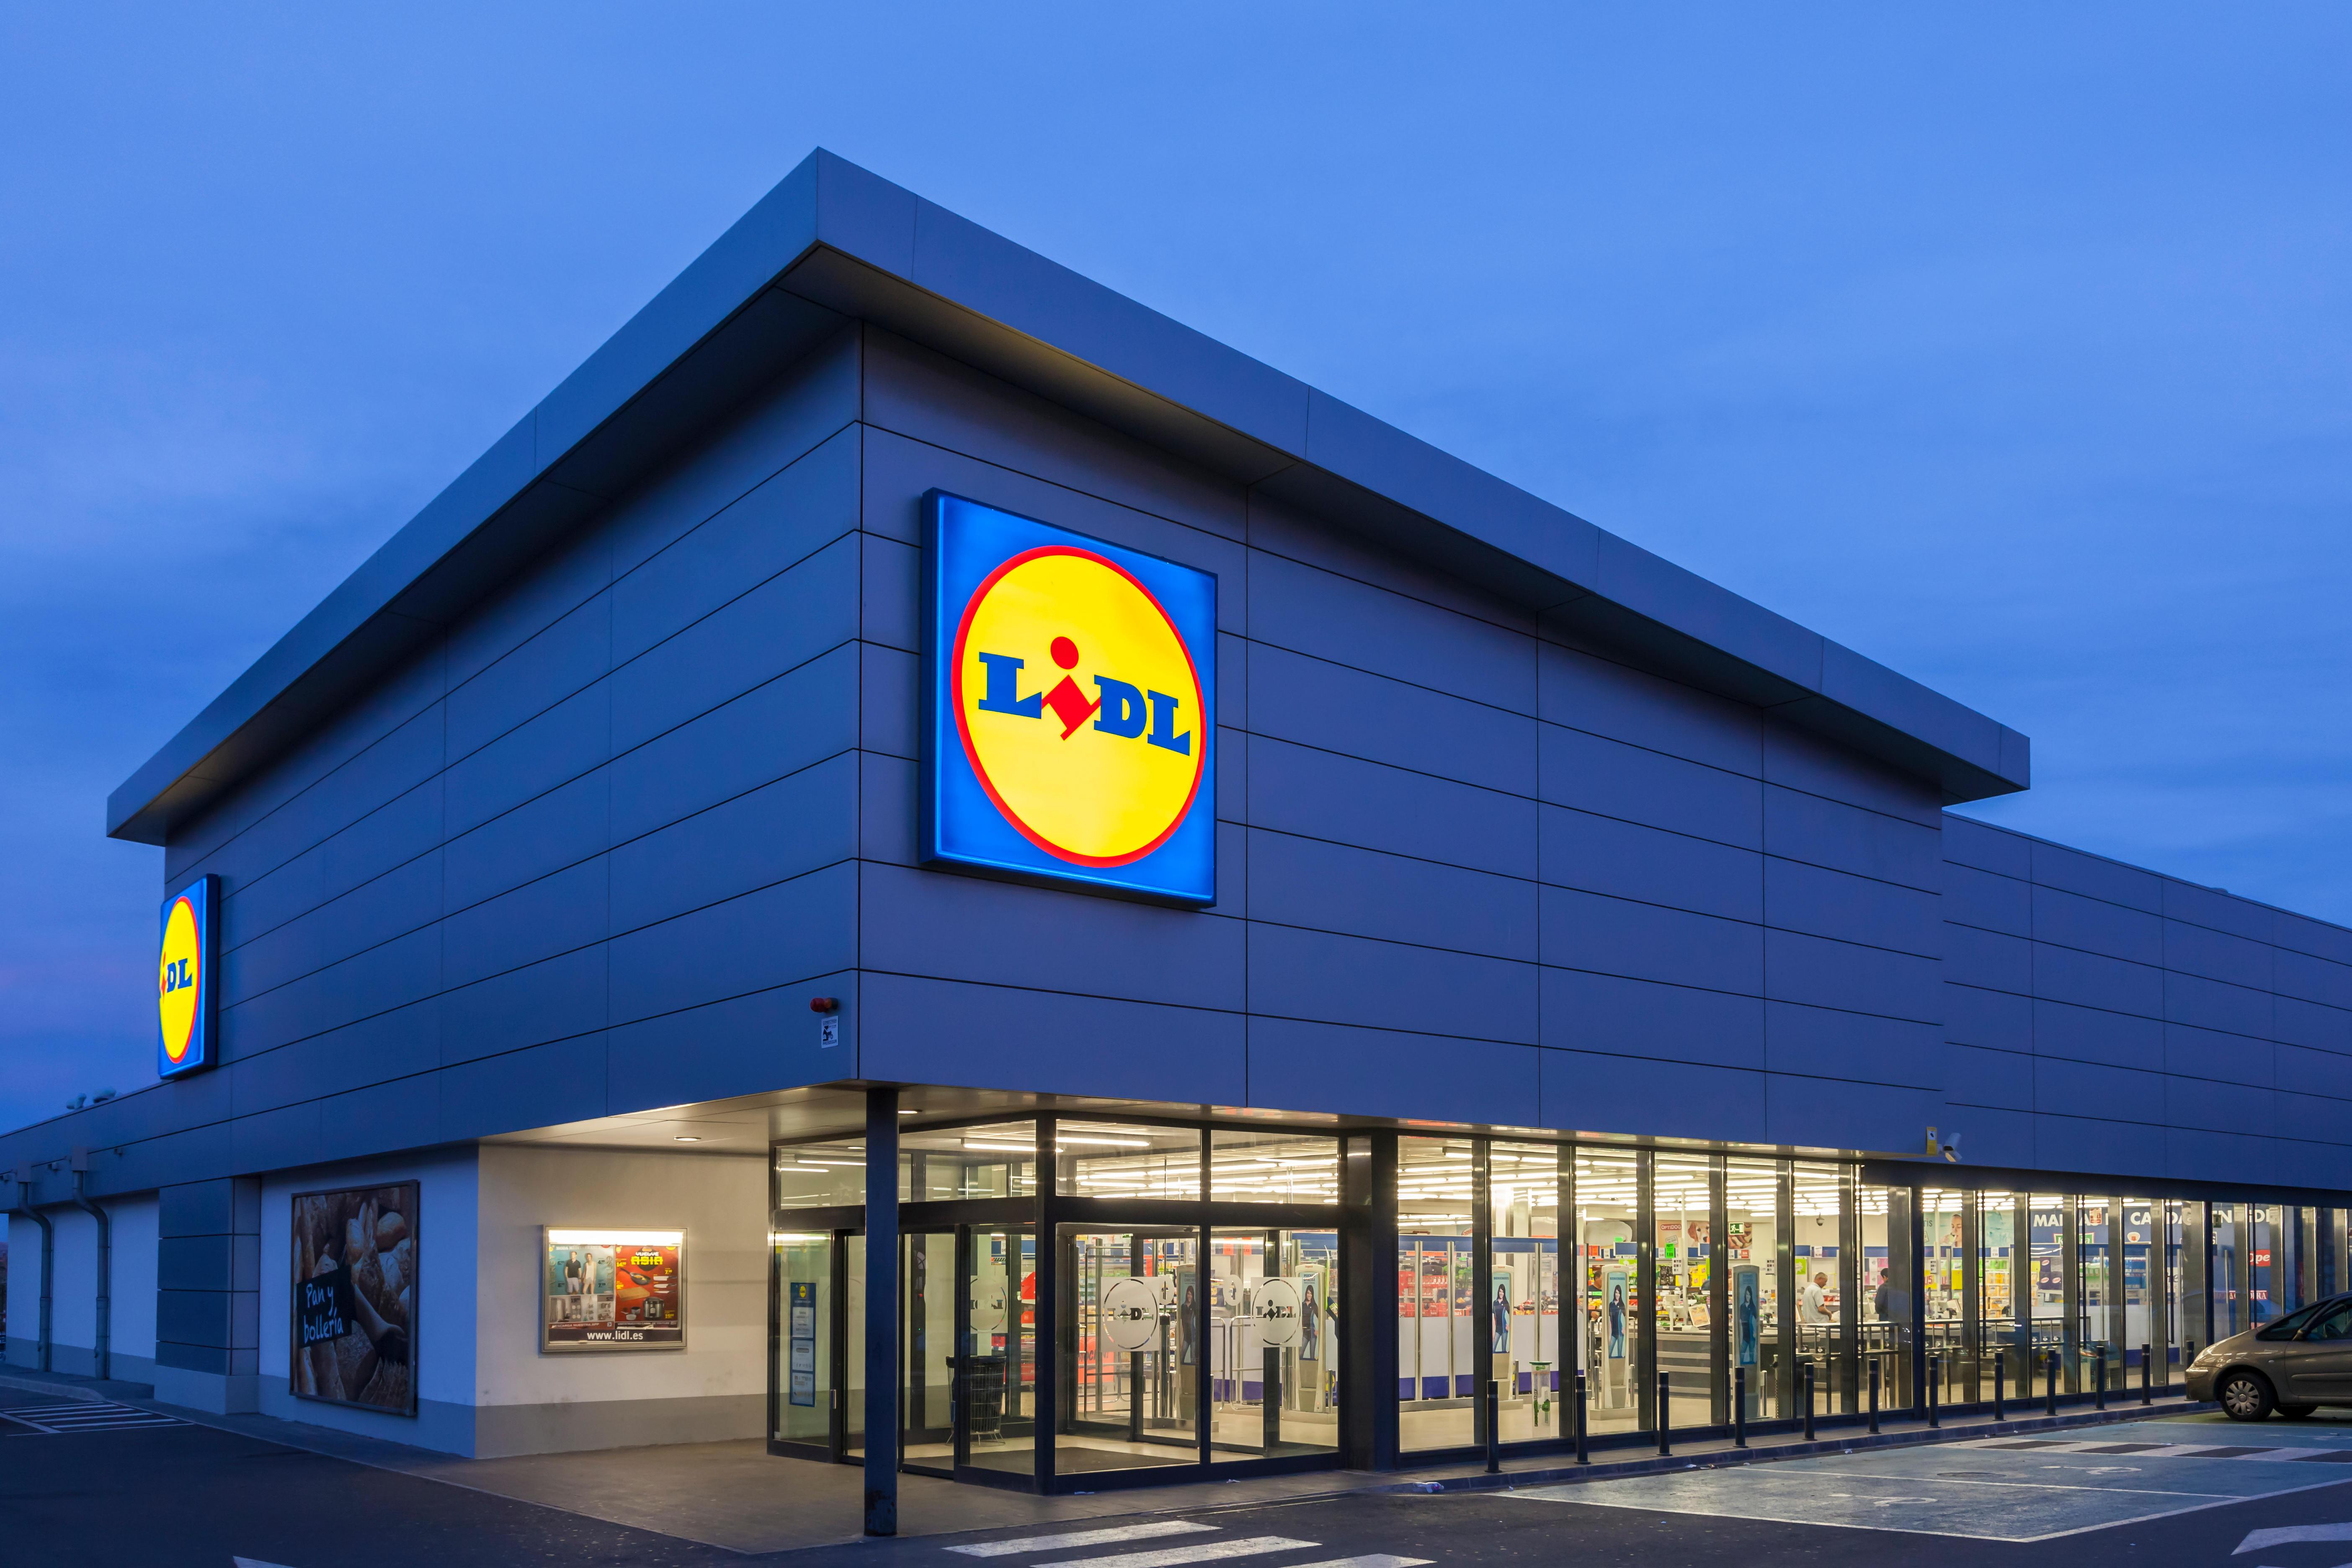 If you're off to Lidl check the bank holiday opening hours first